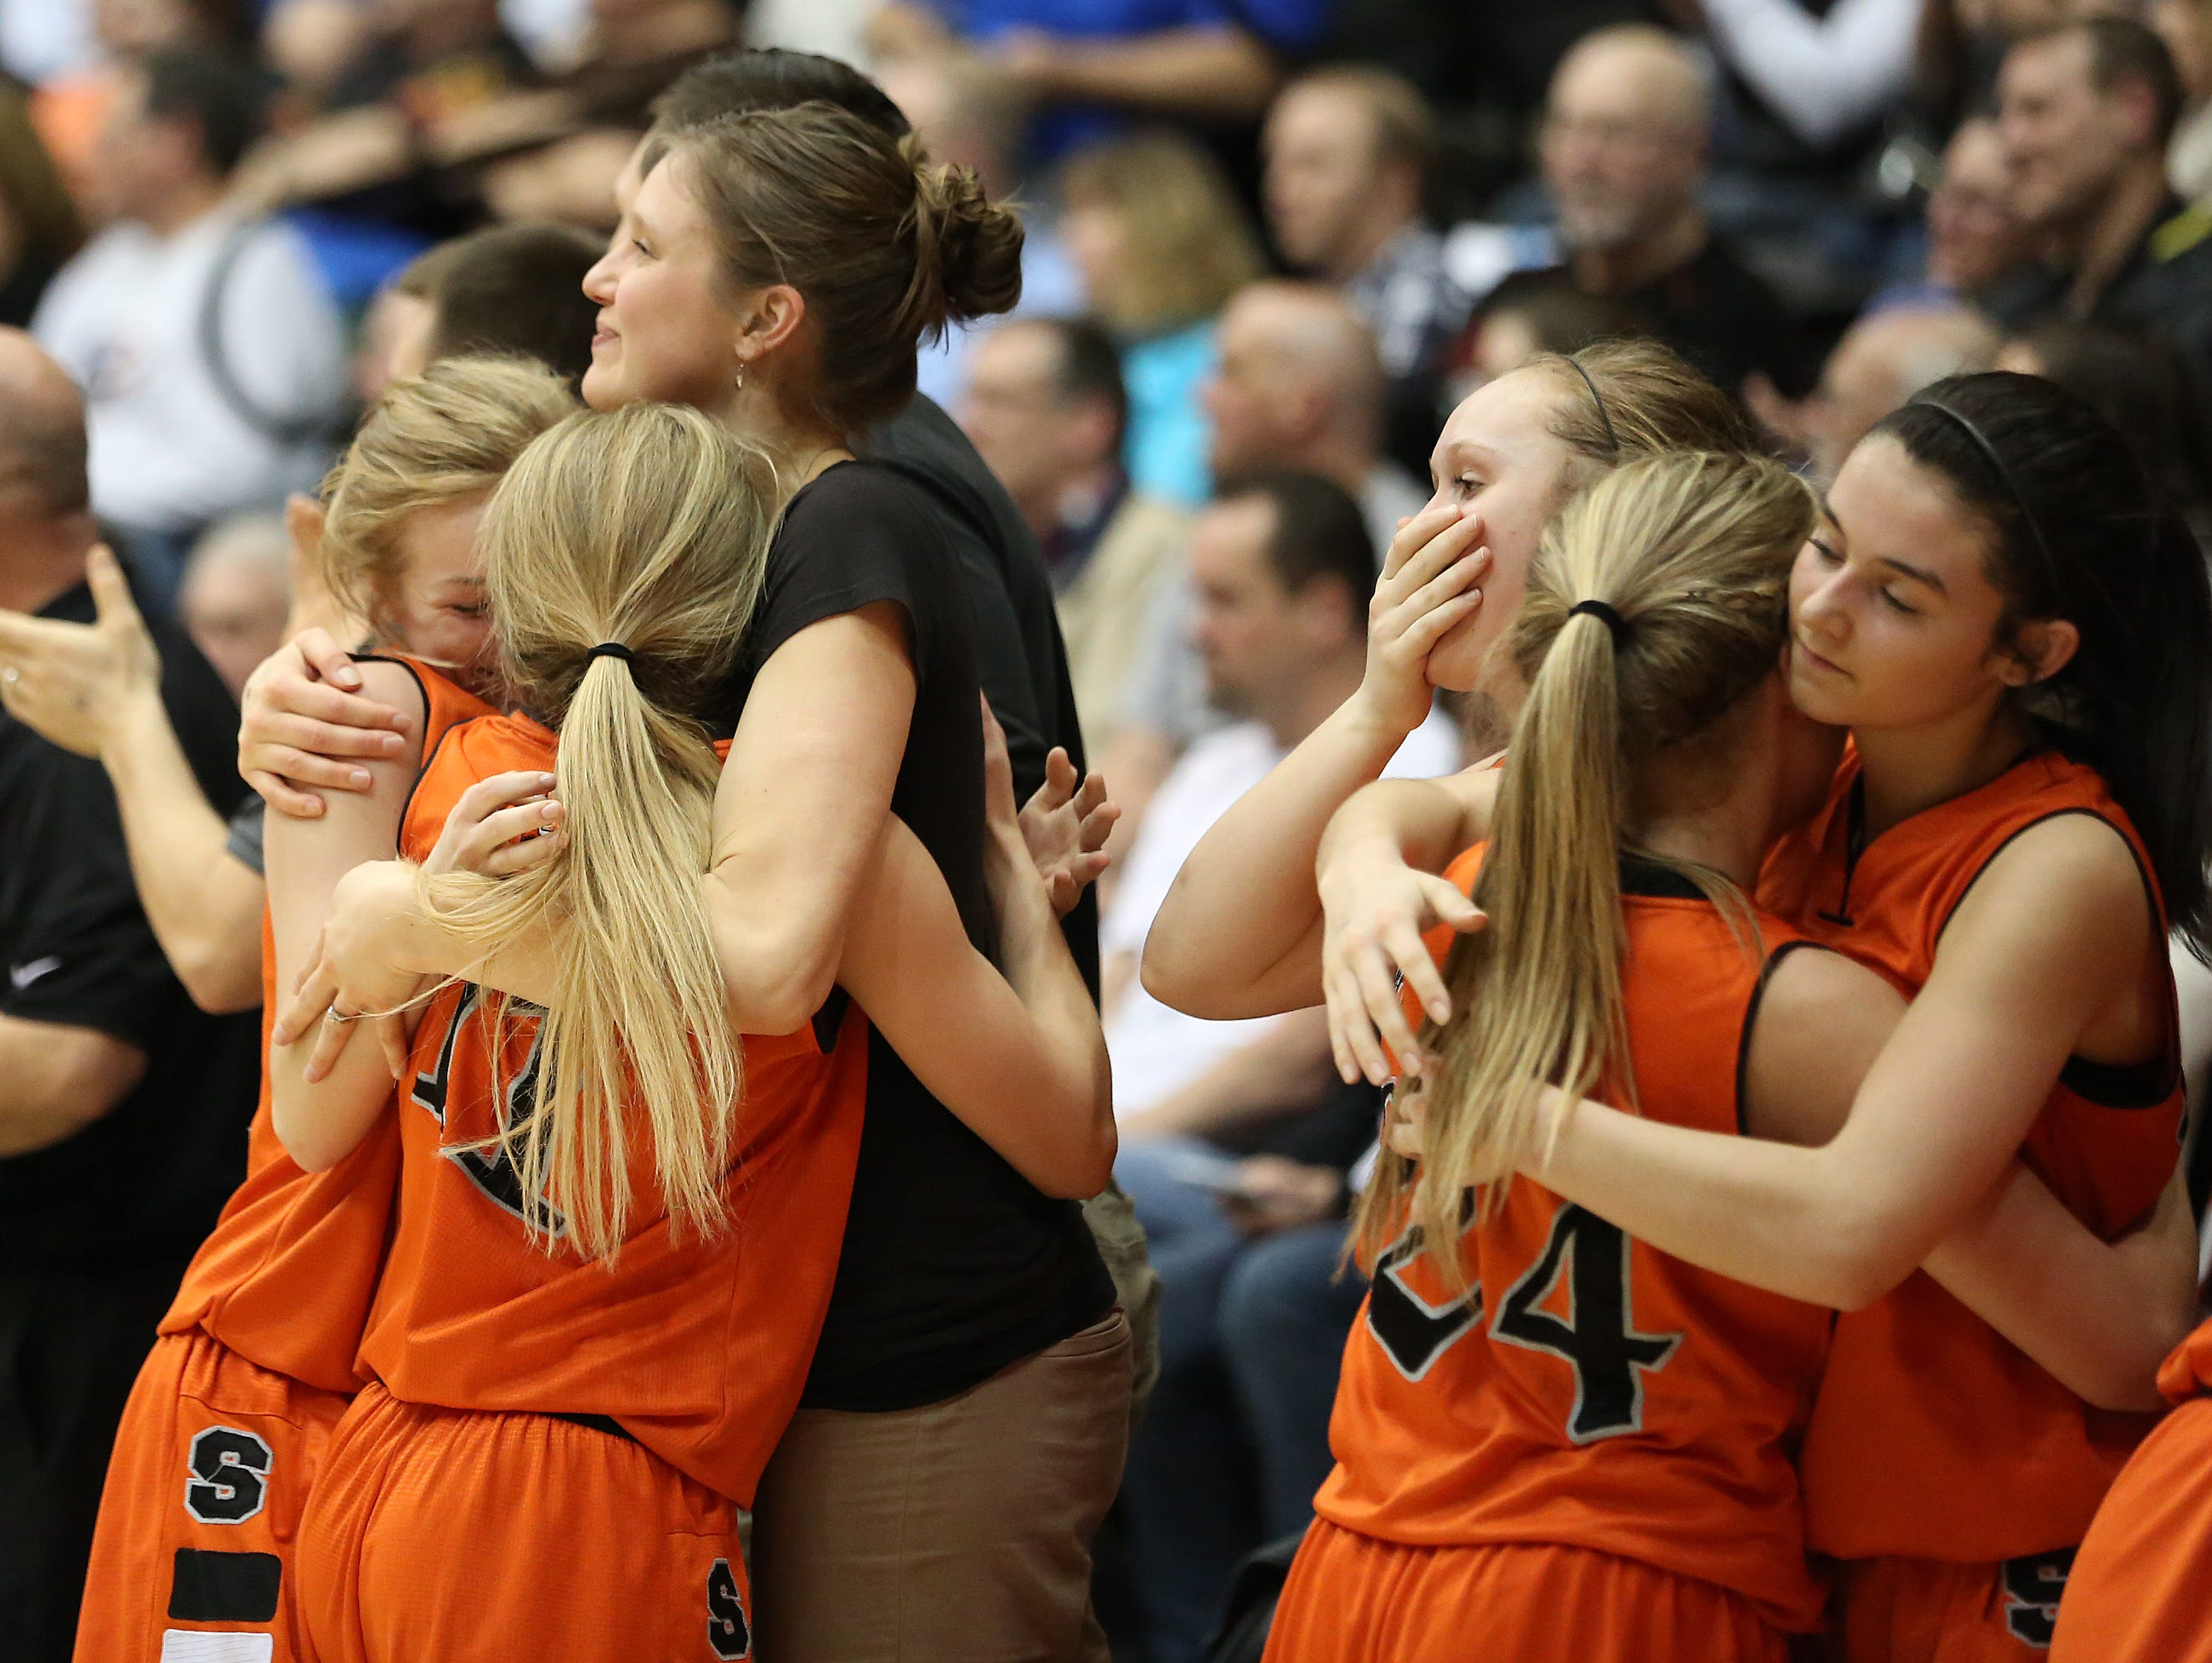 Silverton players embrace as the Foxes fall to LaSalle 42-28 in the OSAA Class 5A state championship on Friday, March 10, 2017, at Gill Coliseum in Corvallis.